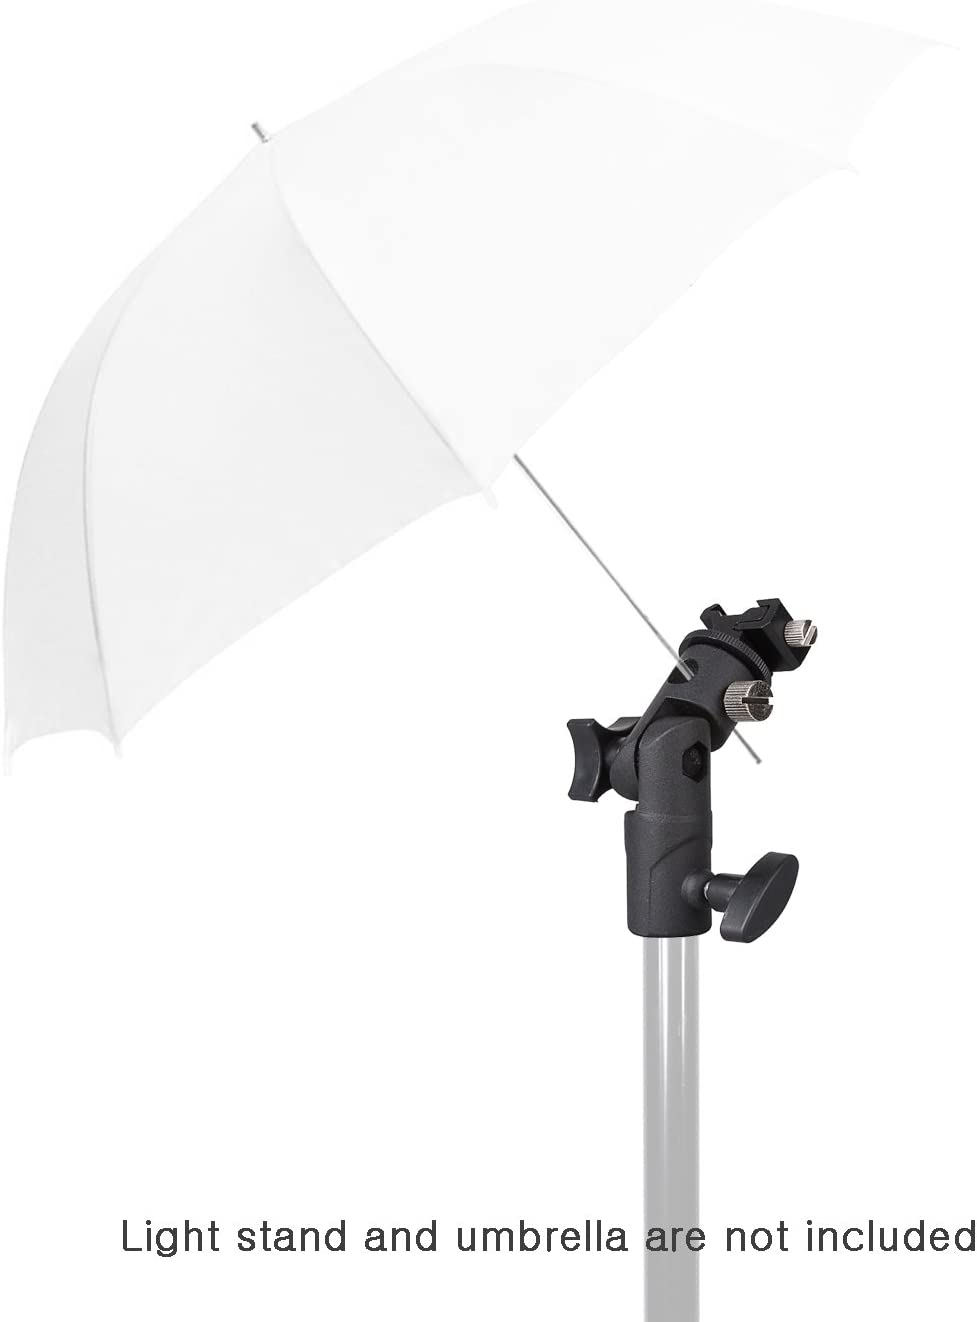 Light Stand Tripod Hot Shoe Mount Photo Studio LimoStudio AGG2366 E-Type Flash Bracket Multi Functional 4 1//4-inch Tall Including Umbrella Reflector Holder 3//8 inch Female Thread 1//4 2 Pack